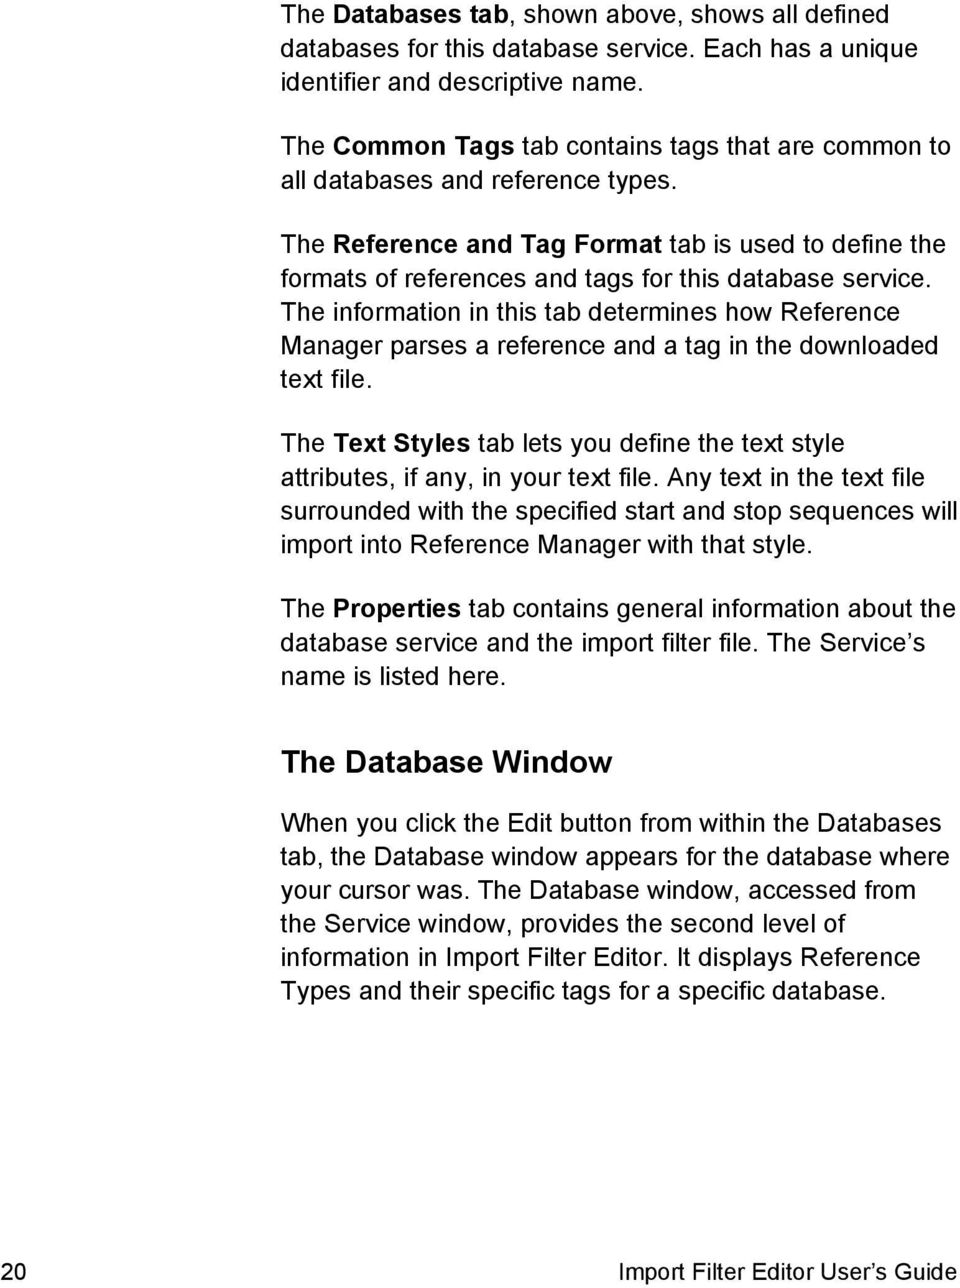 The information in this tab determines how Reference Manager parses a reference and a tag in the downloaded text file.